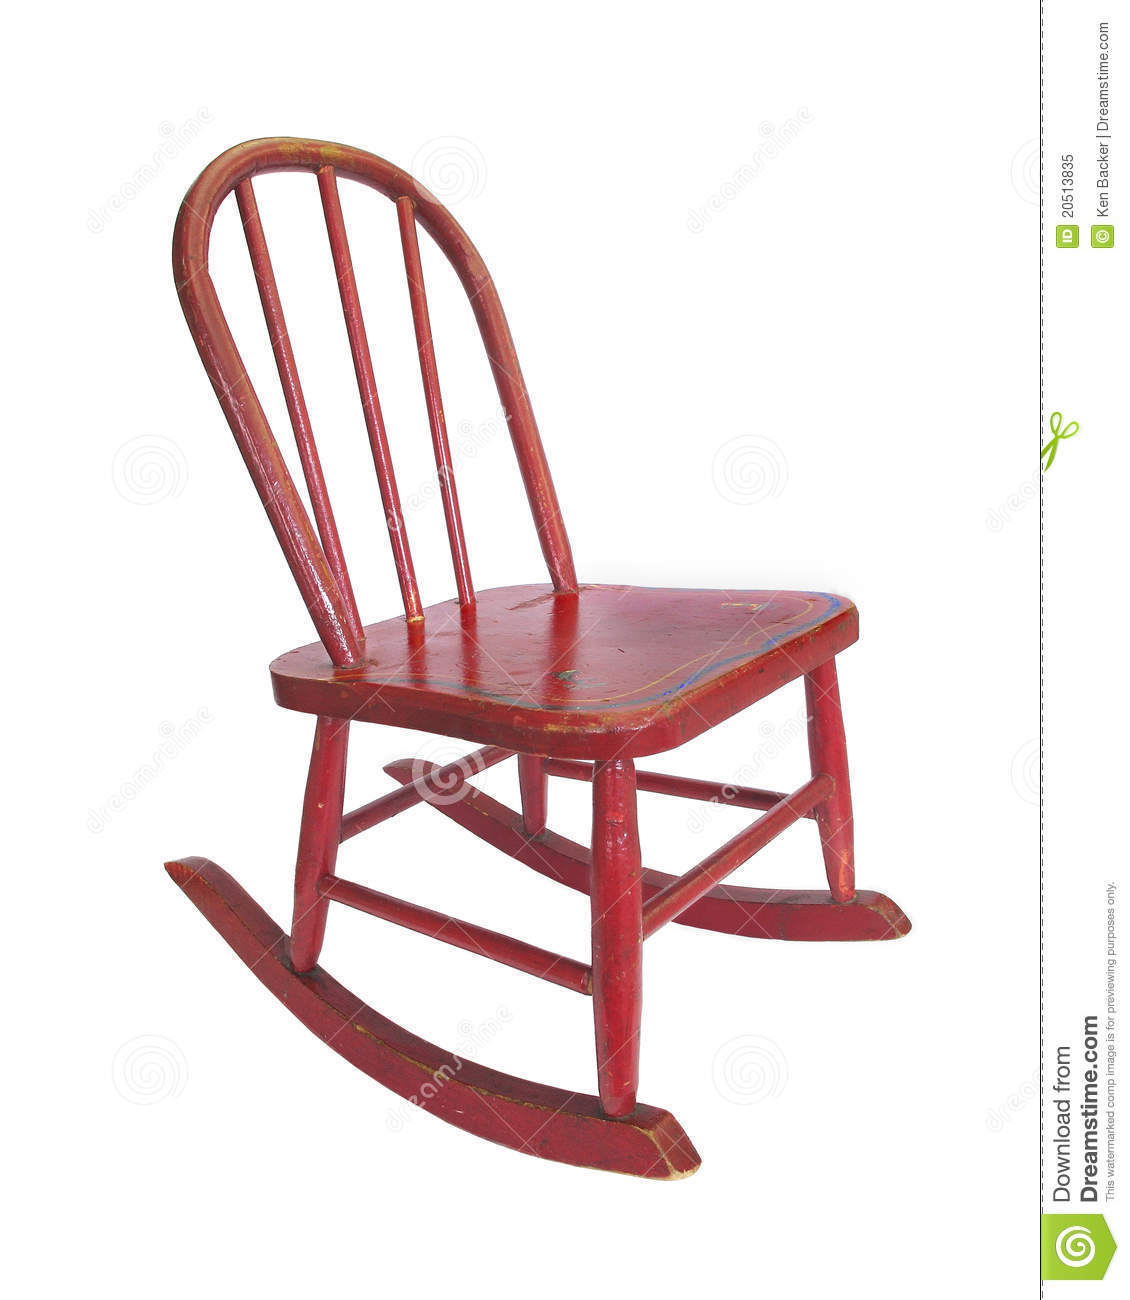 Red Rocking Chair Clipart ~ Small red rocking chair royalty free stock photo image